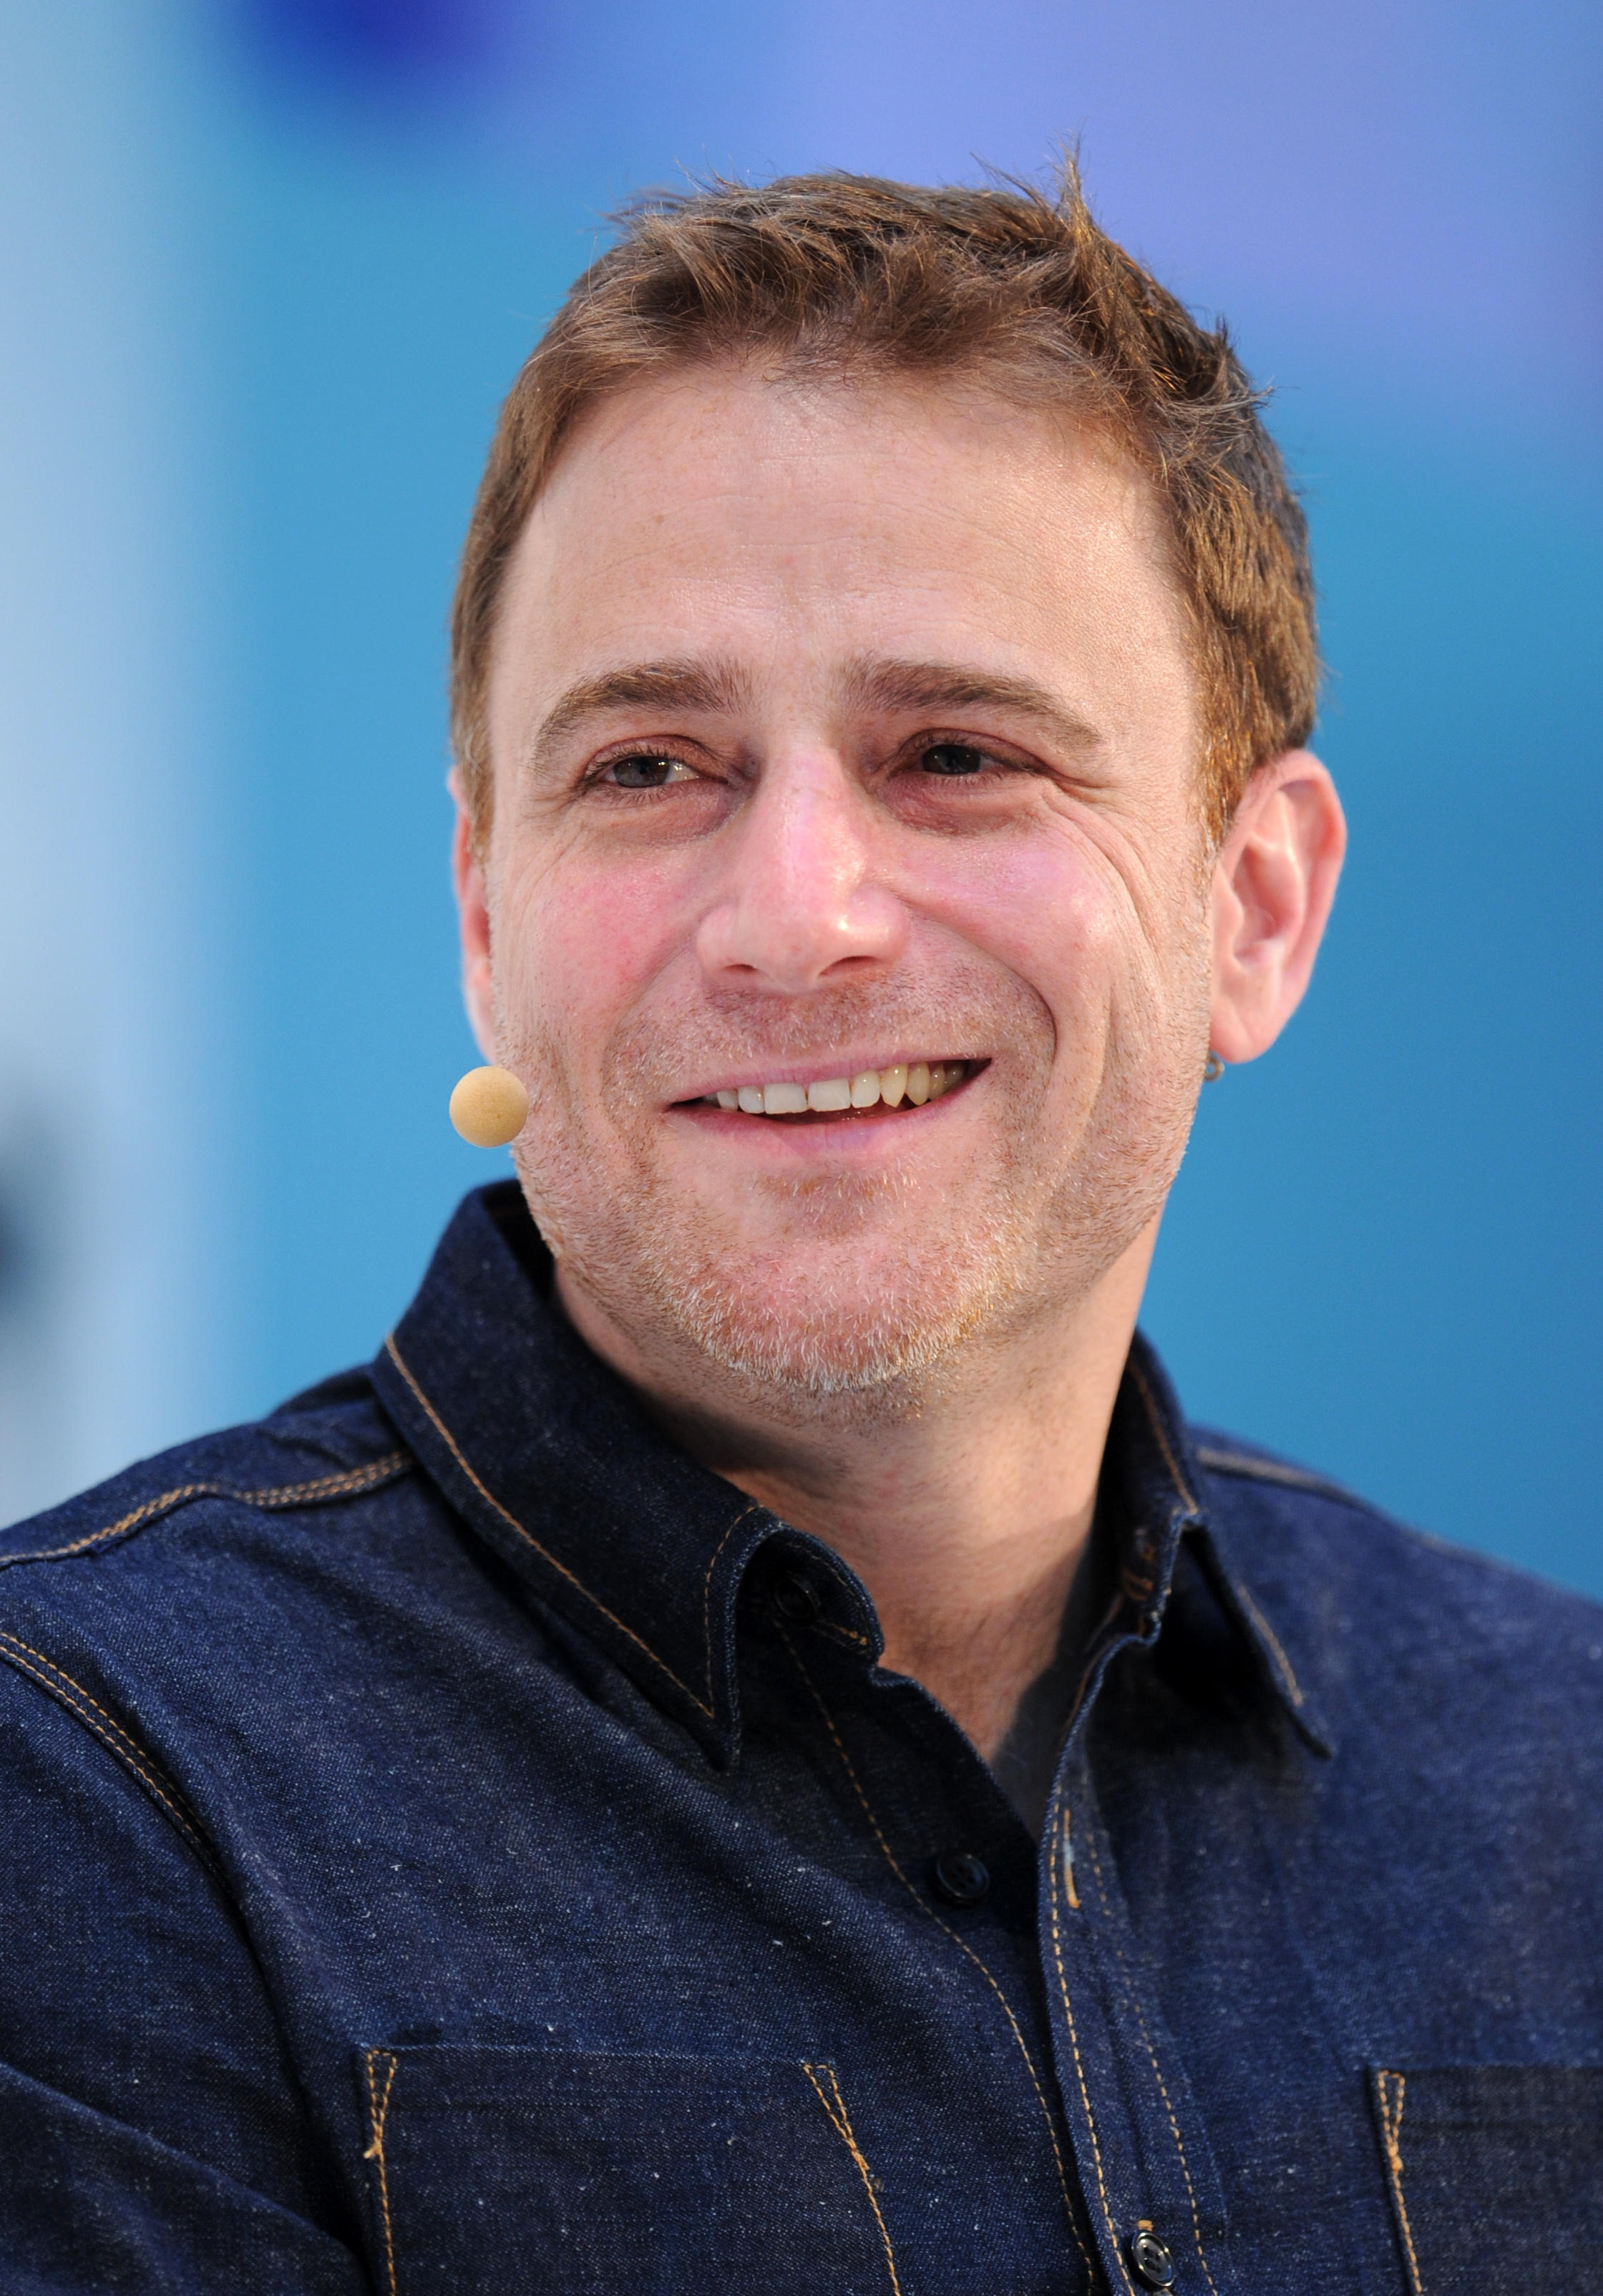 Stewart Butterfield, co-founder and CEO of Slack, speaks at the DLD (Digital-Life-Design) Conference in Munich, Germany on Jan. 19, 2015.